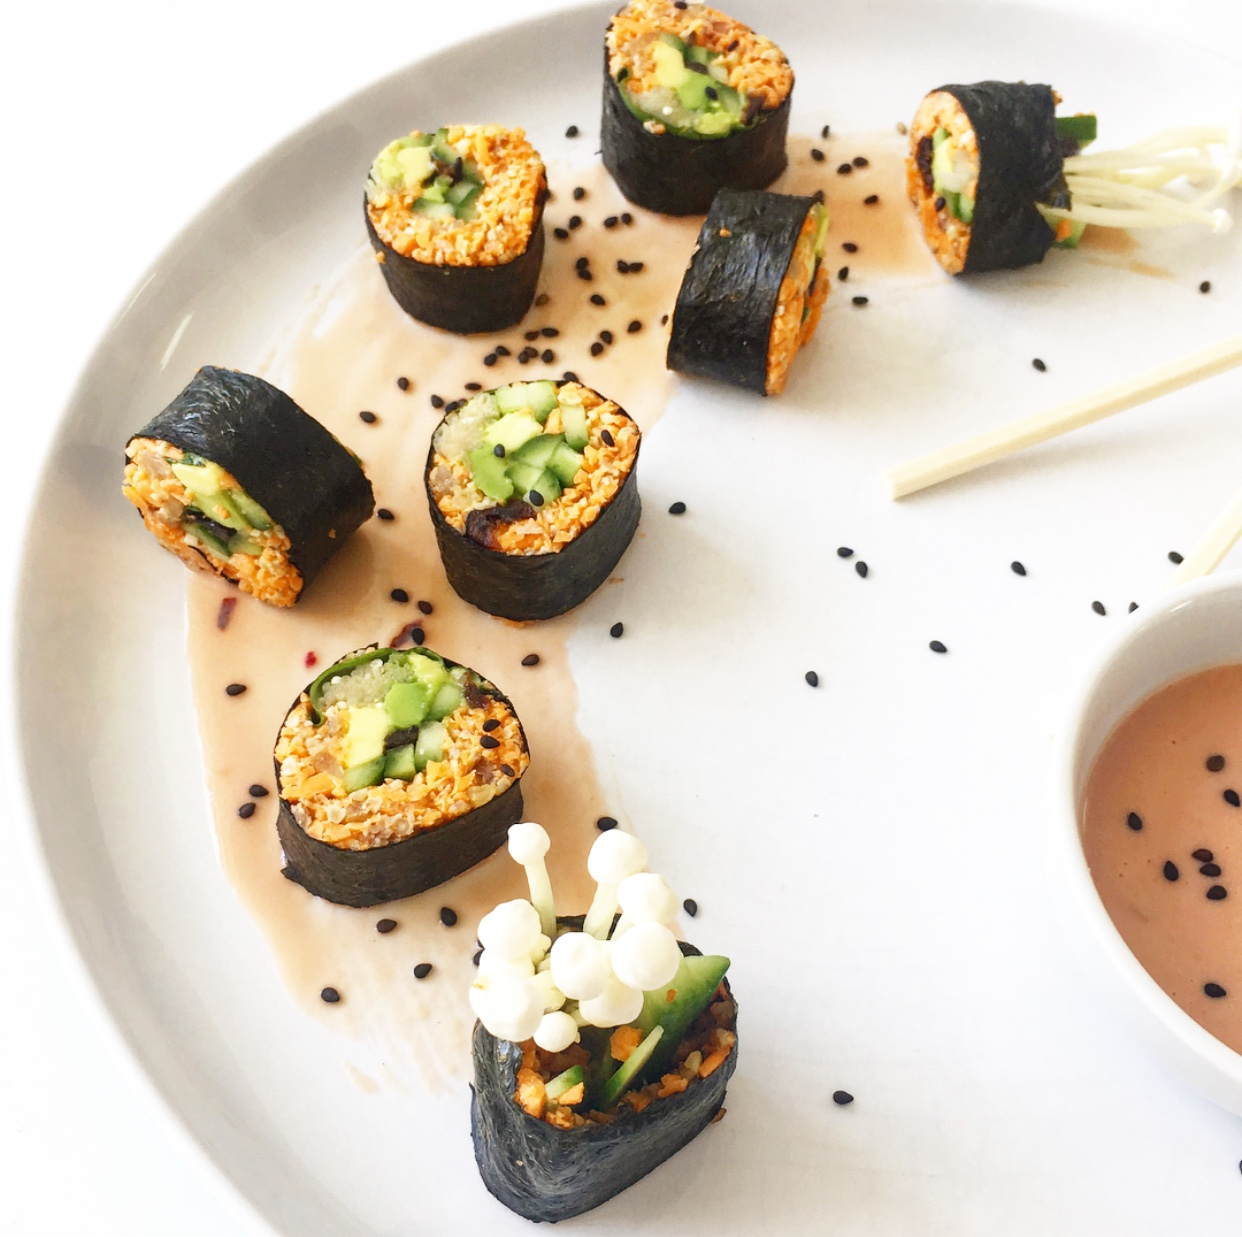 This raw vegan paleo Thanksgiving sushi is sure to add some extra fun to your holiday spread